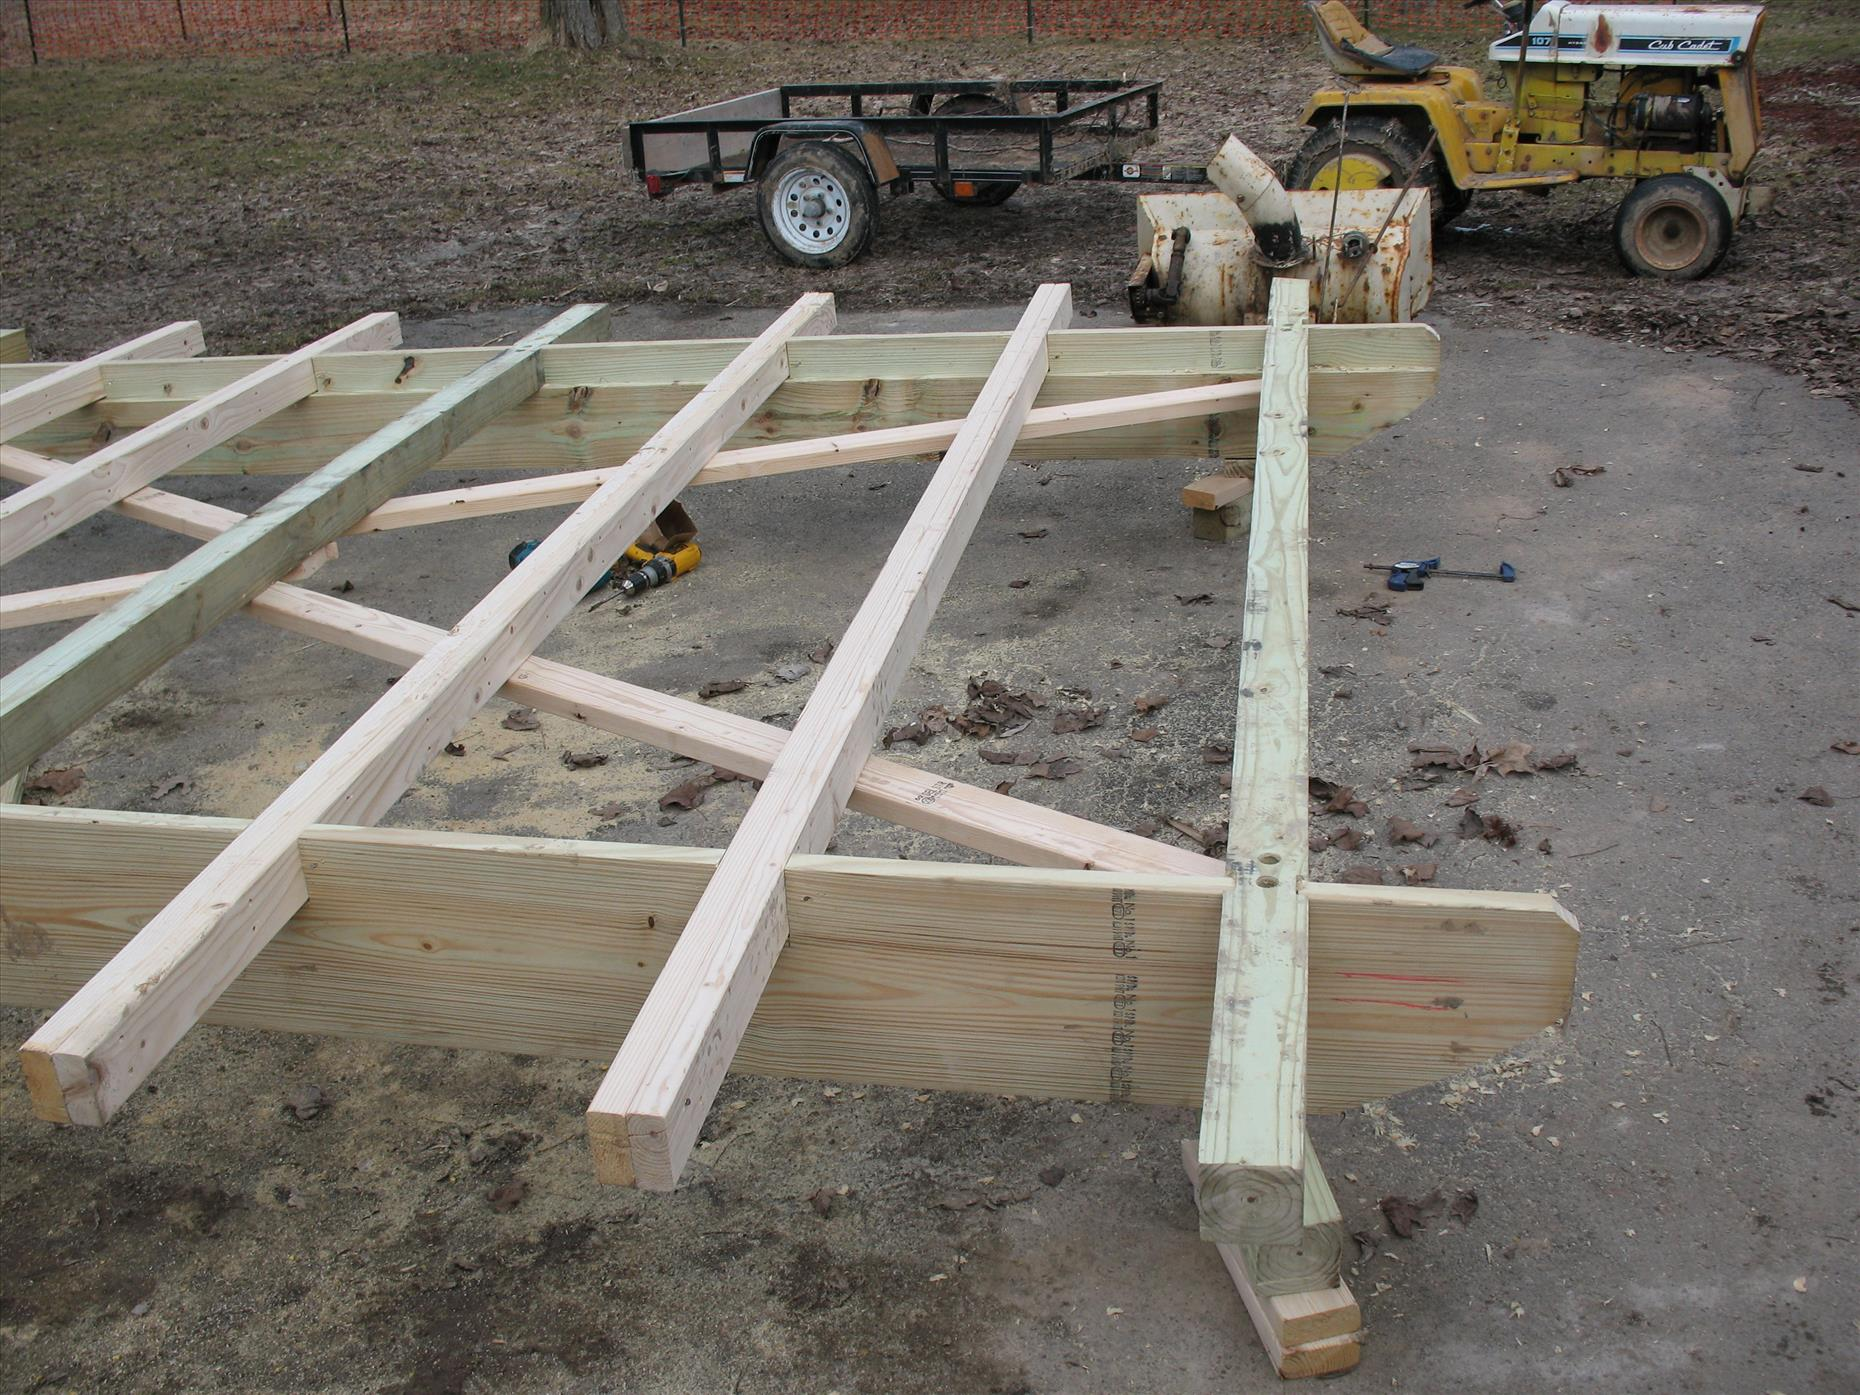 Half of the completed base--with skids, floor joists, and cross bracing.